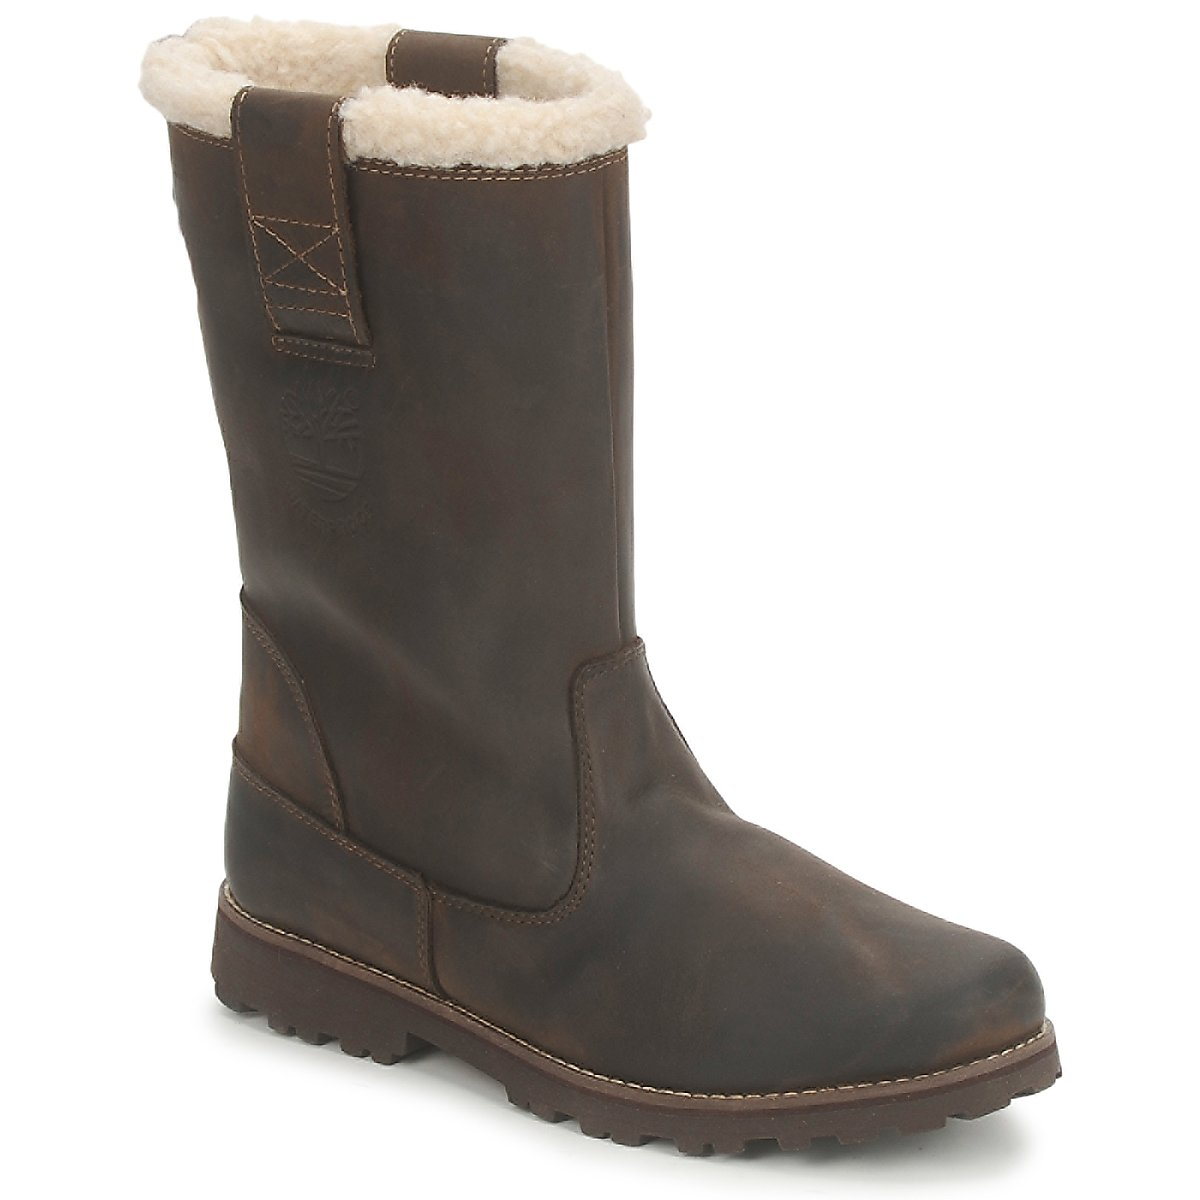 Botte ville Timberland 8 IN PULL ON WP BOOT WITH SHEARLING Marron foncé